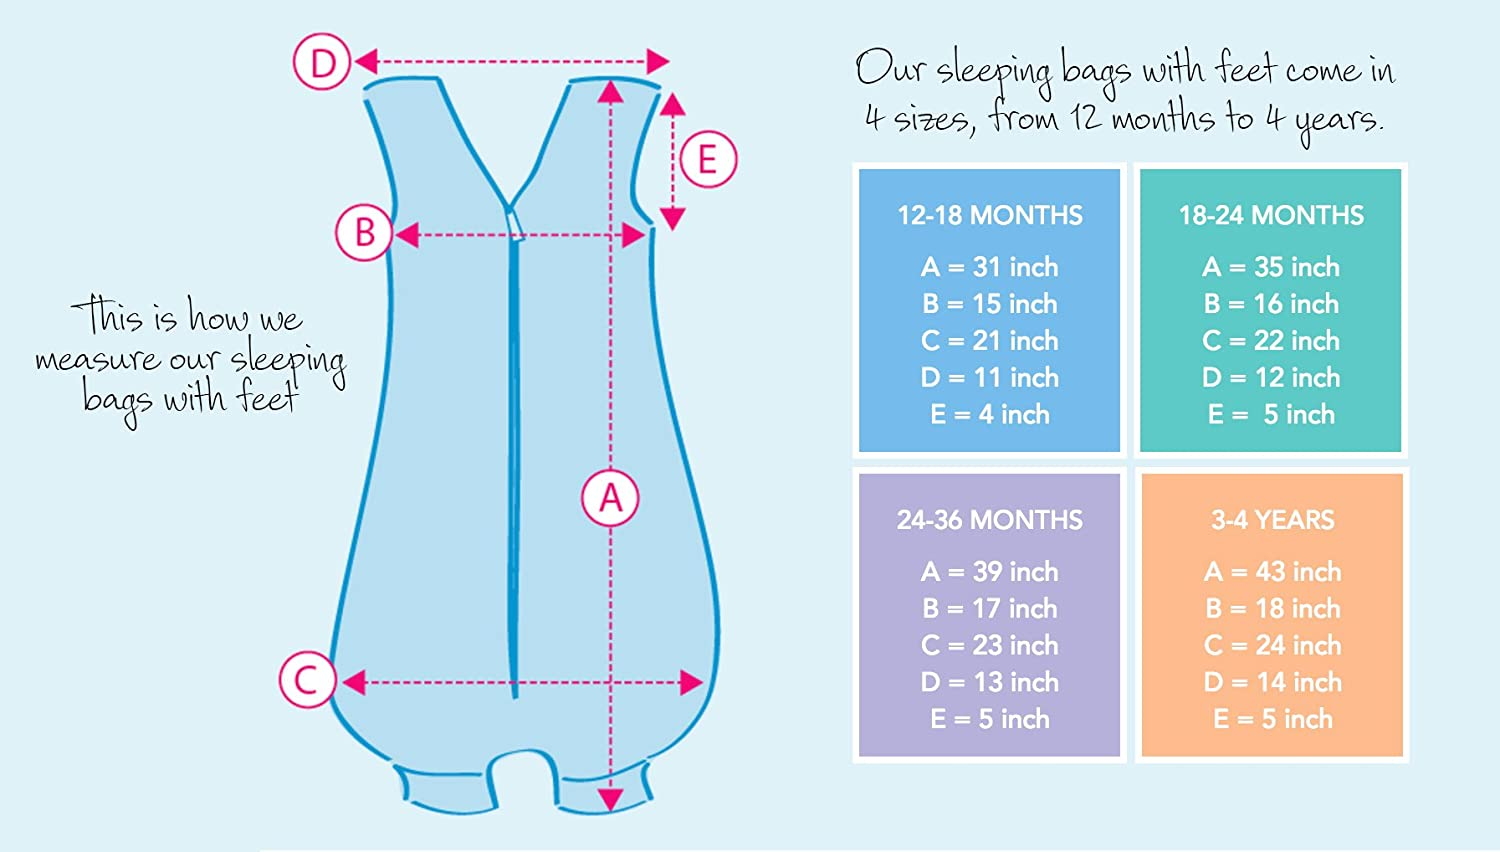 Amazon.com: Slumbersafe Sleeping Bag with Feet and Poppers 2.5 Tog Simply Owl 12-18 Months: Baby